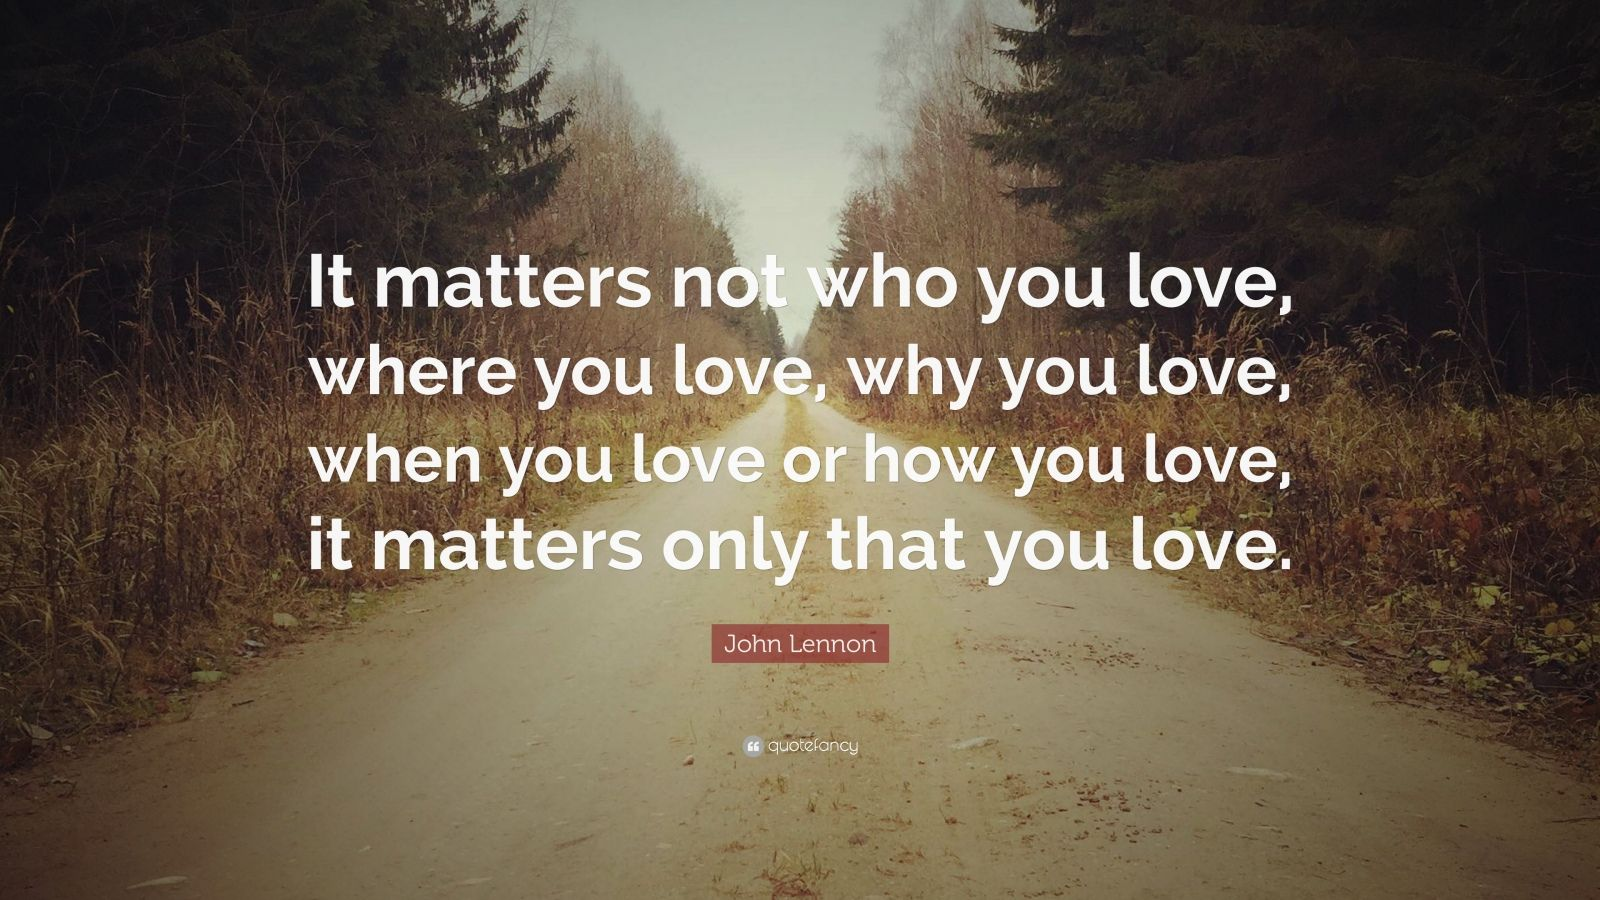 John Lennon Quote It Matters Not Who You Love Where You Love Why